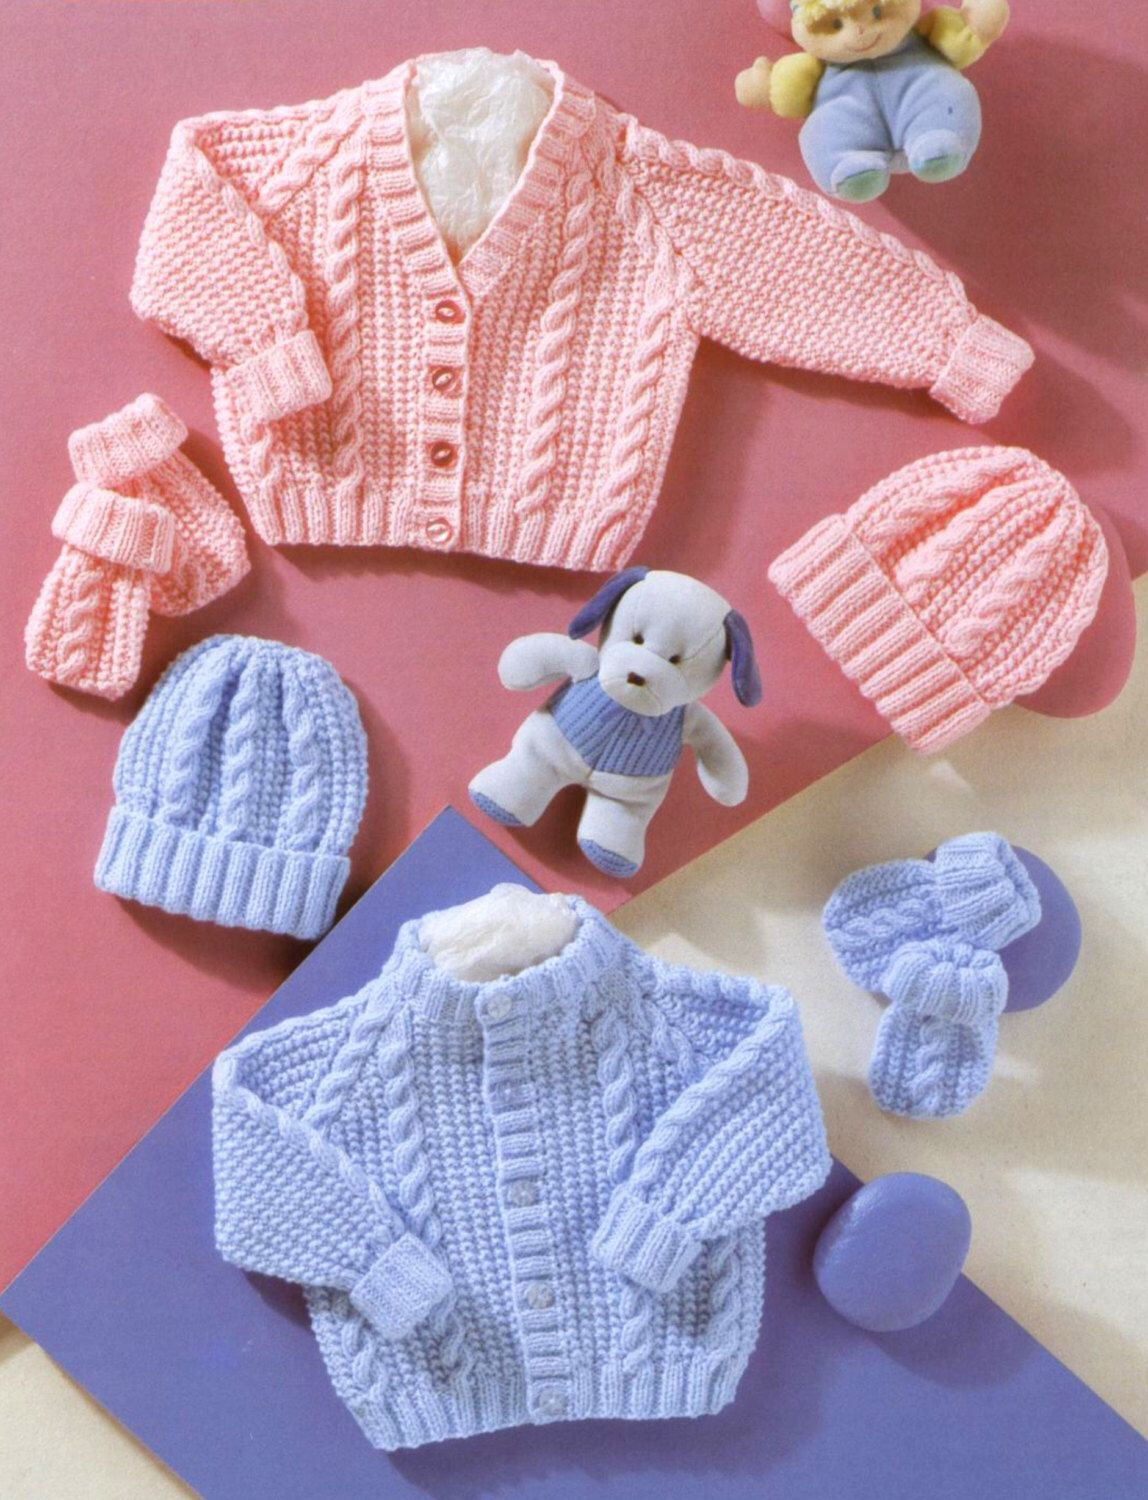 Vintage knitting pattern pdf baby cable pram sets cardigan jacket vintage knitting pattern pdf baby cable pram sets cardigan jacket beanie hat and mitts includes premature bankloansurffo Gallery